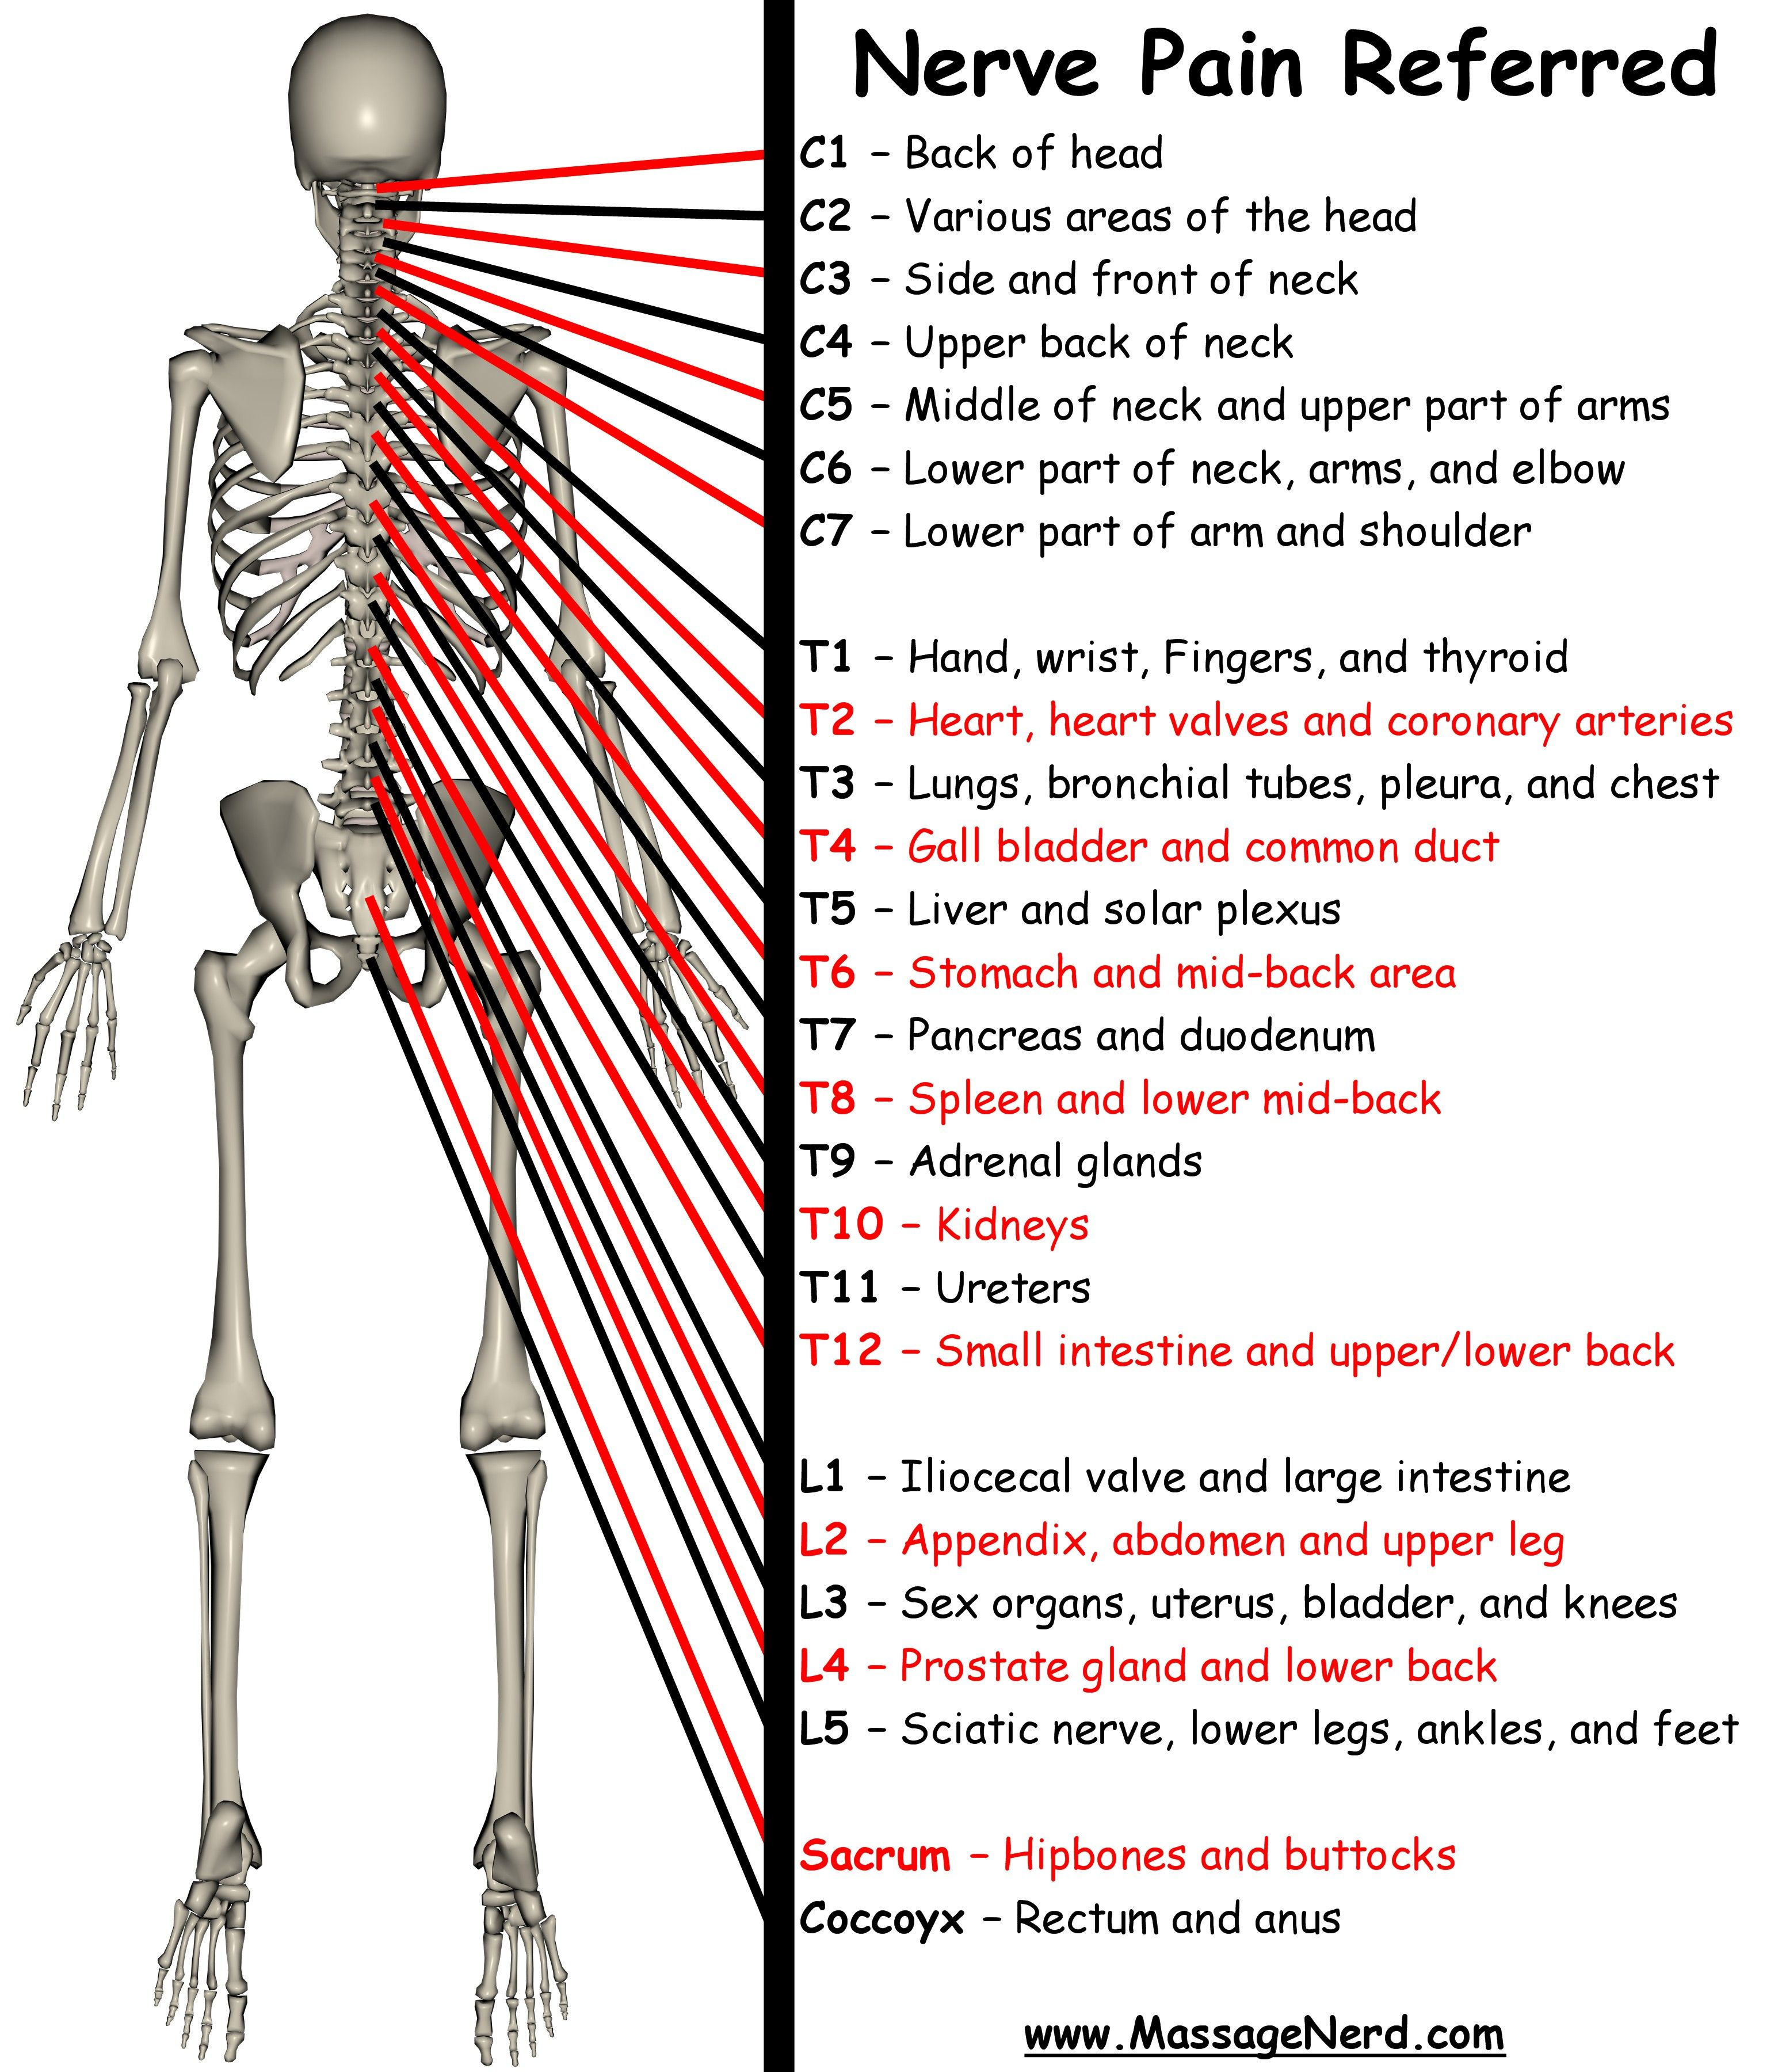 Pin By Carlene Purdy On Massage Therapy Referred Pain Health